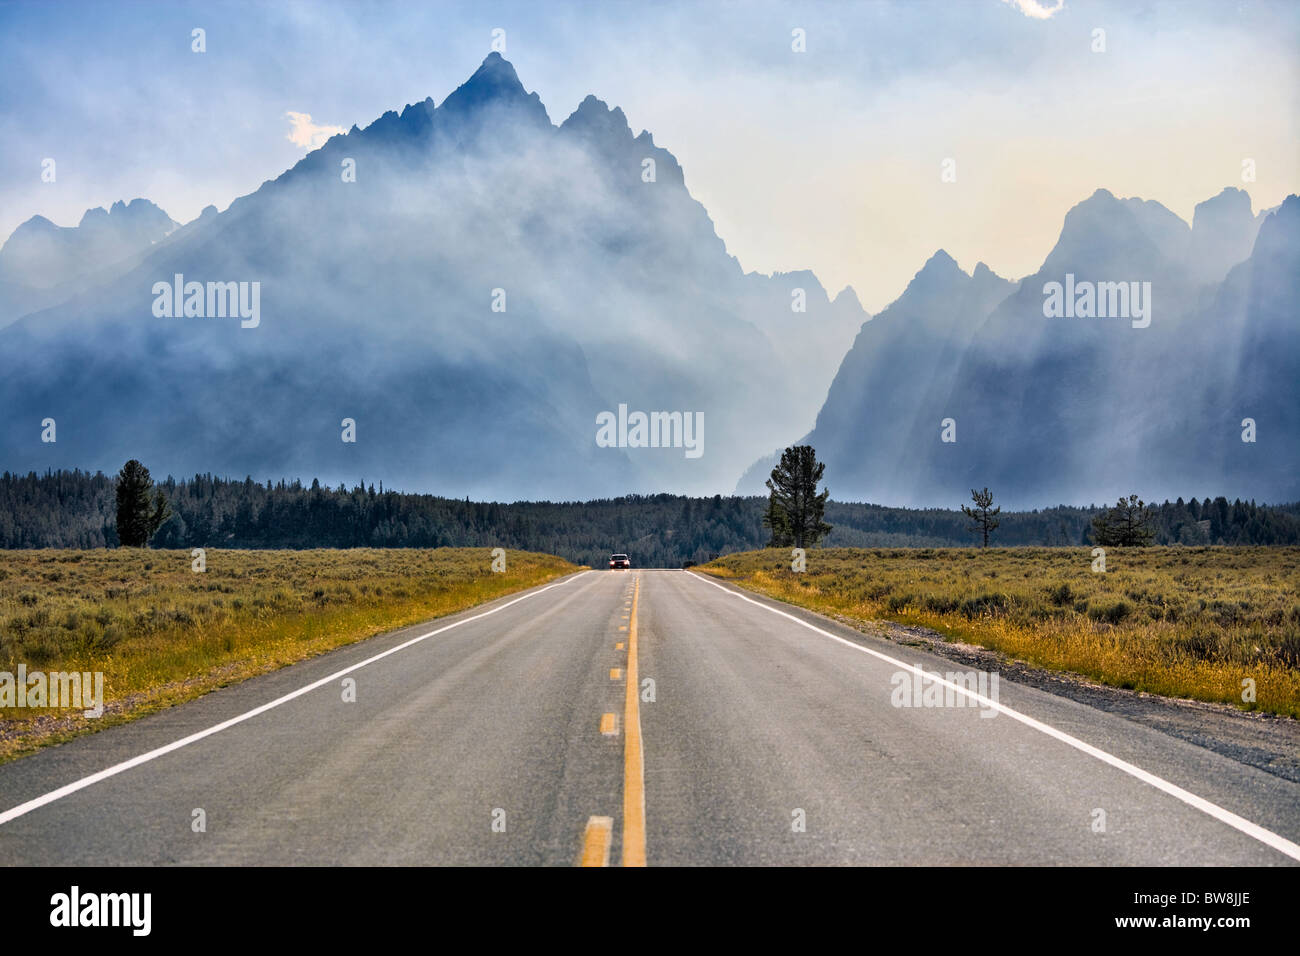 https://c7.alamy.com/comp/BW8JJE/mount-teton-in-grand-teton-national-park-wyoming-jenny-lake-loop-road-BW8JJE.jpg